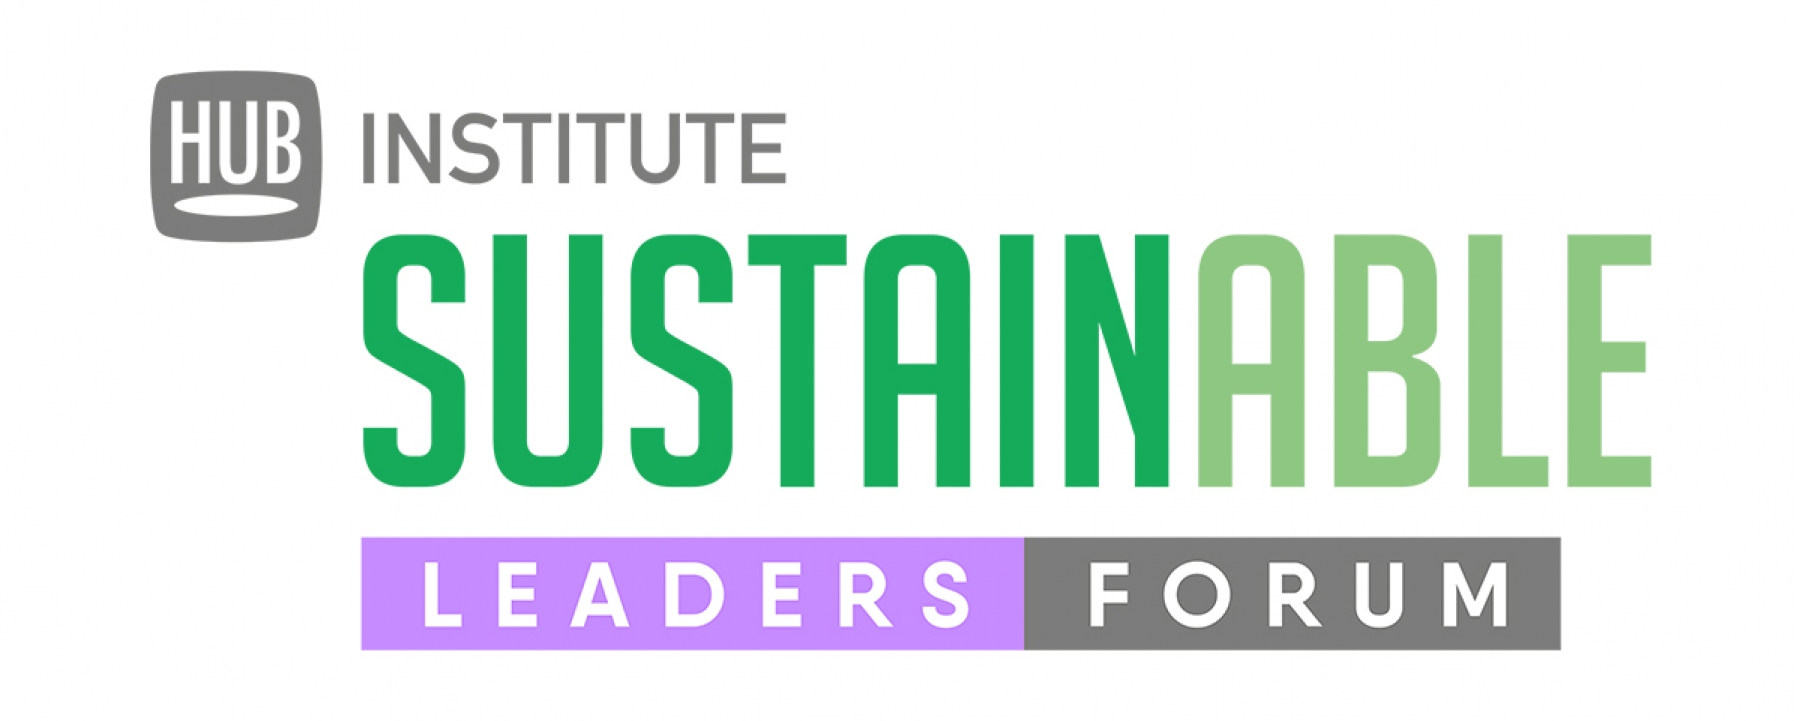 Sustainable Leaders Forum, un événement organisé le 6 mai par Hub Institute